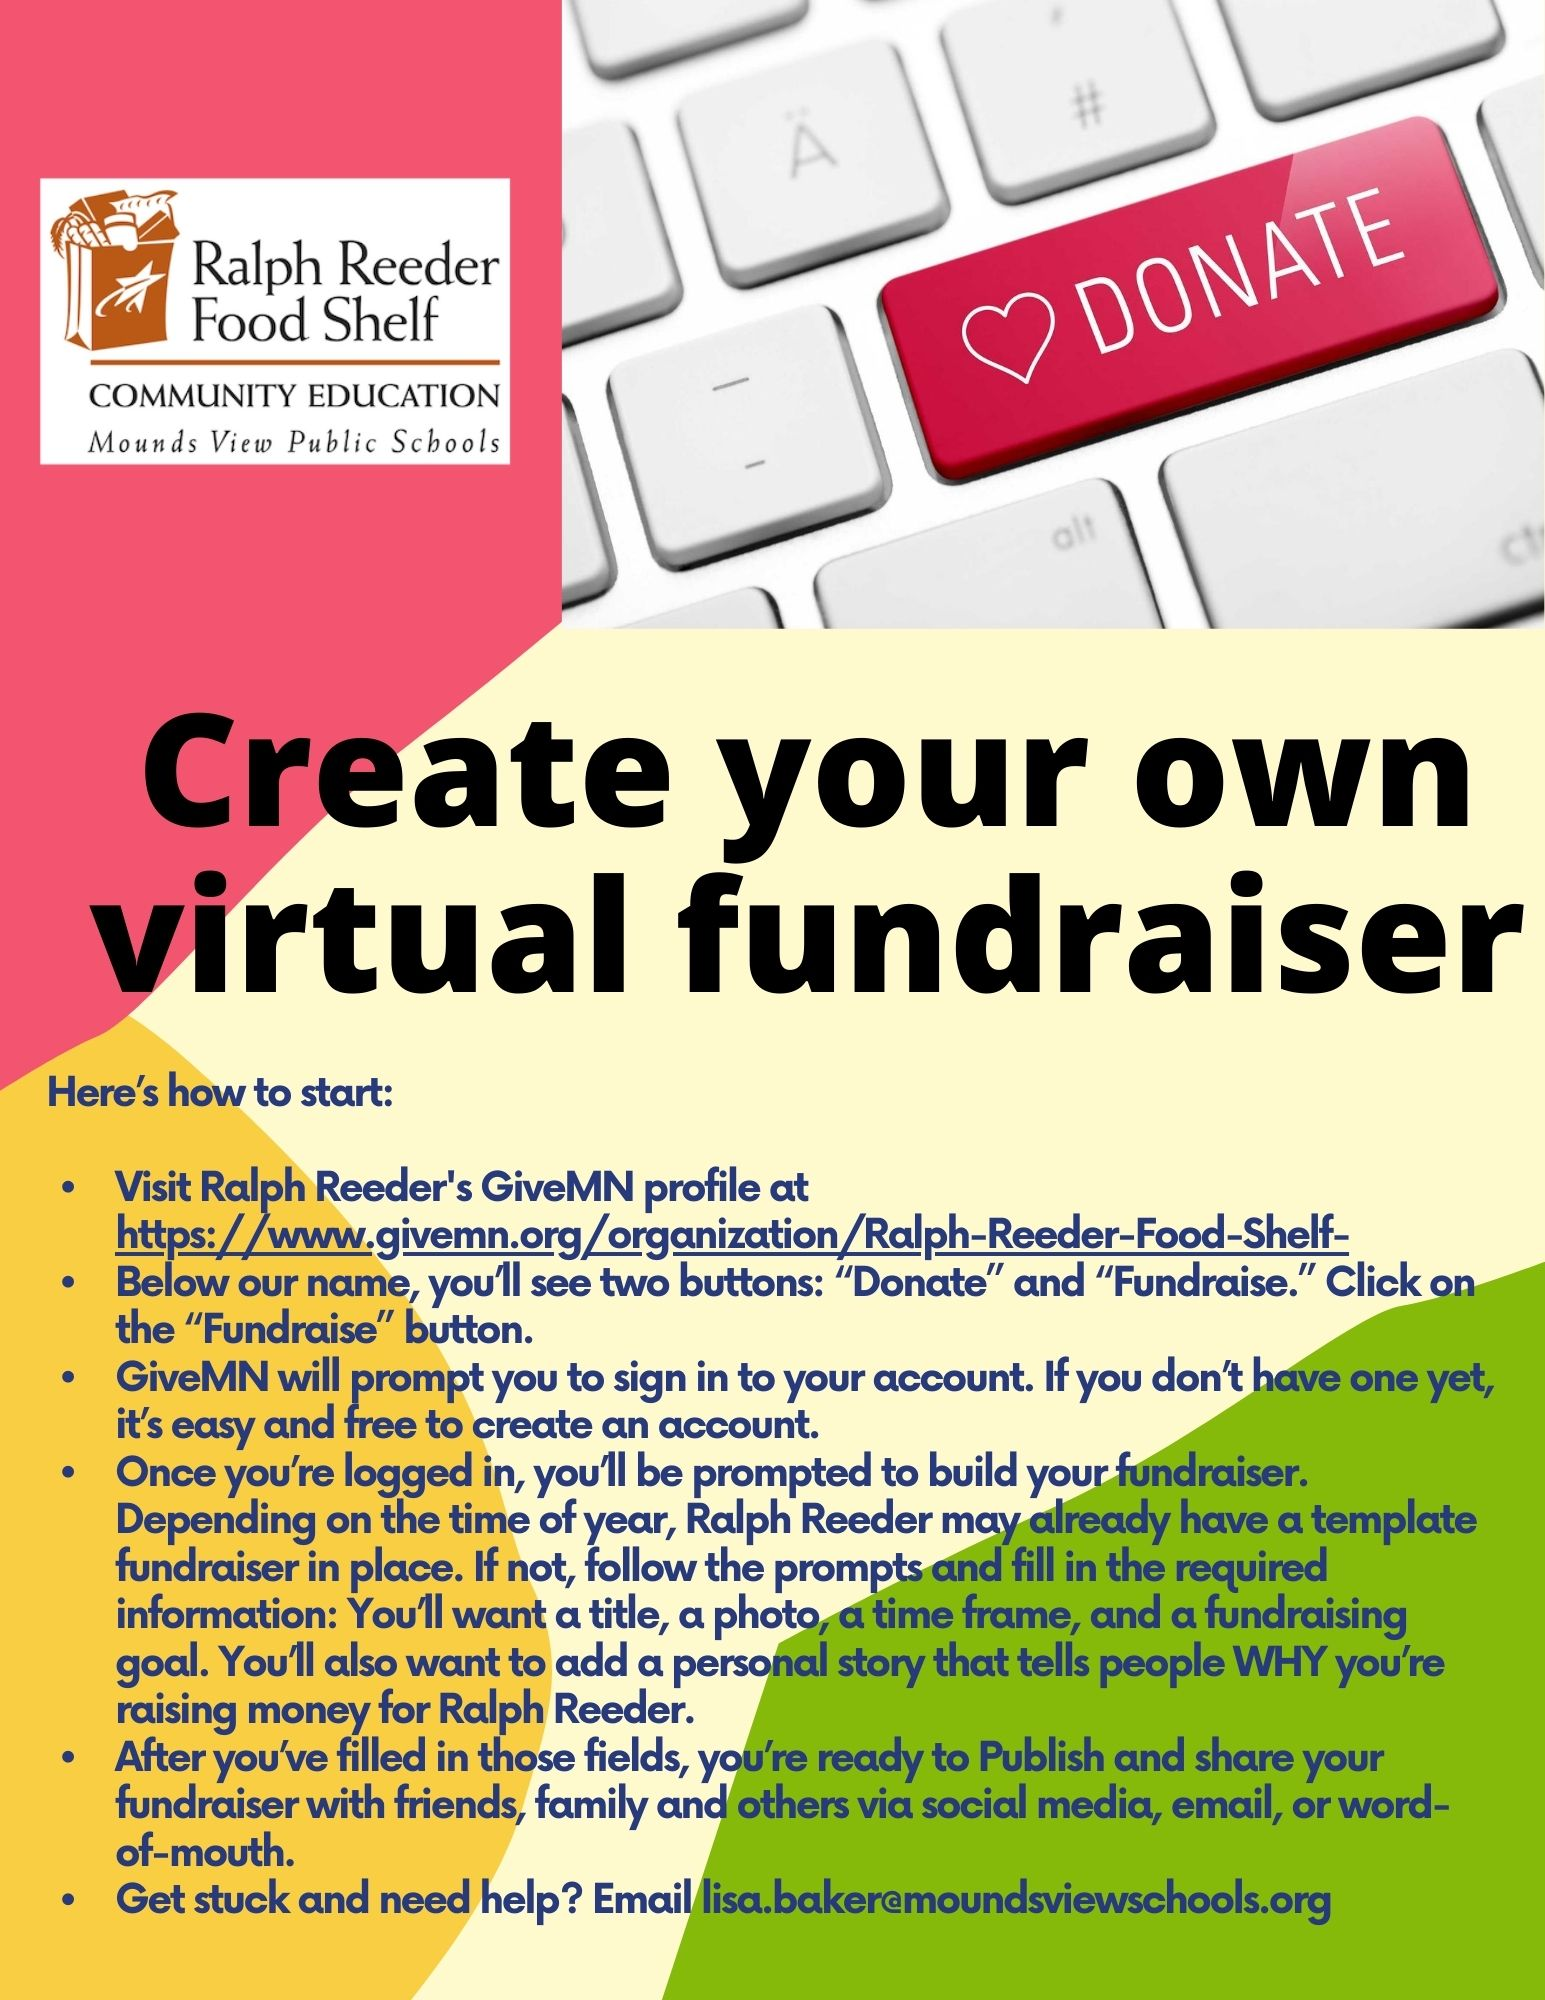 Create your own virtual fundraiser